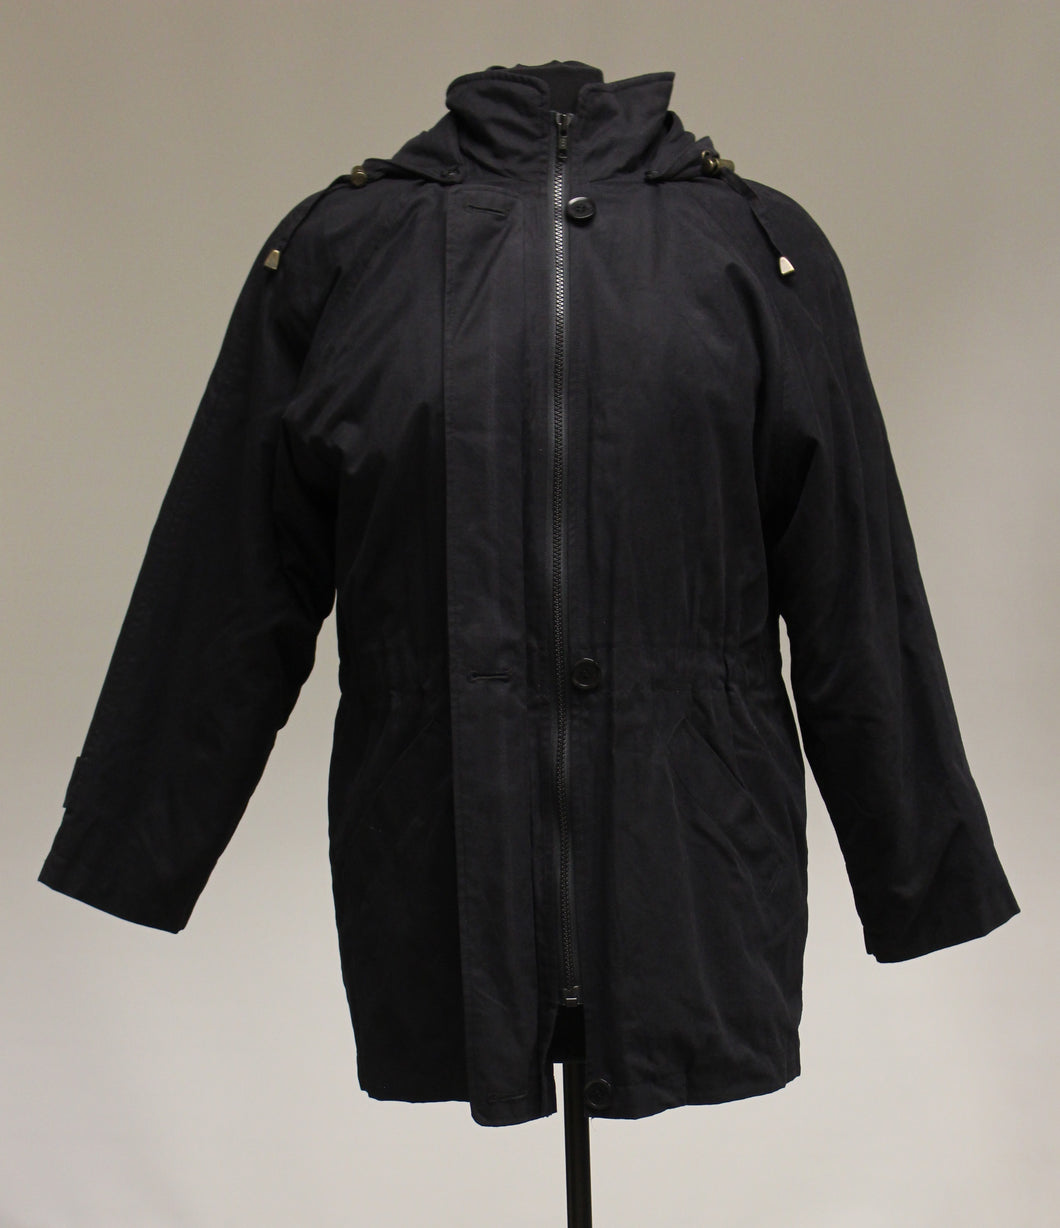 London Fog Ladies Black Winter Coat, Size: Small P